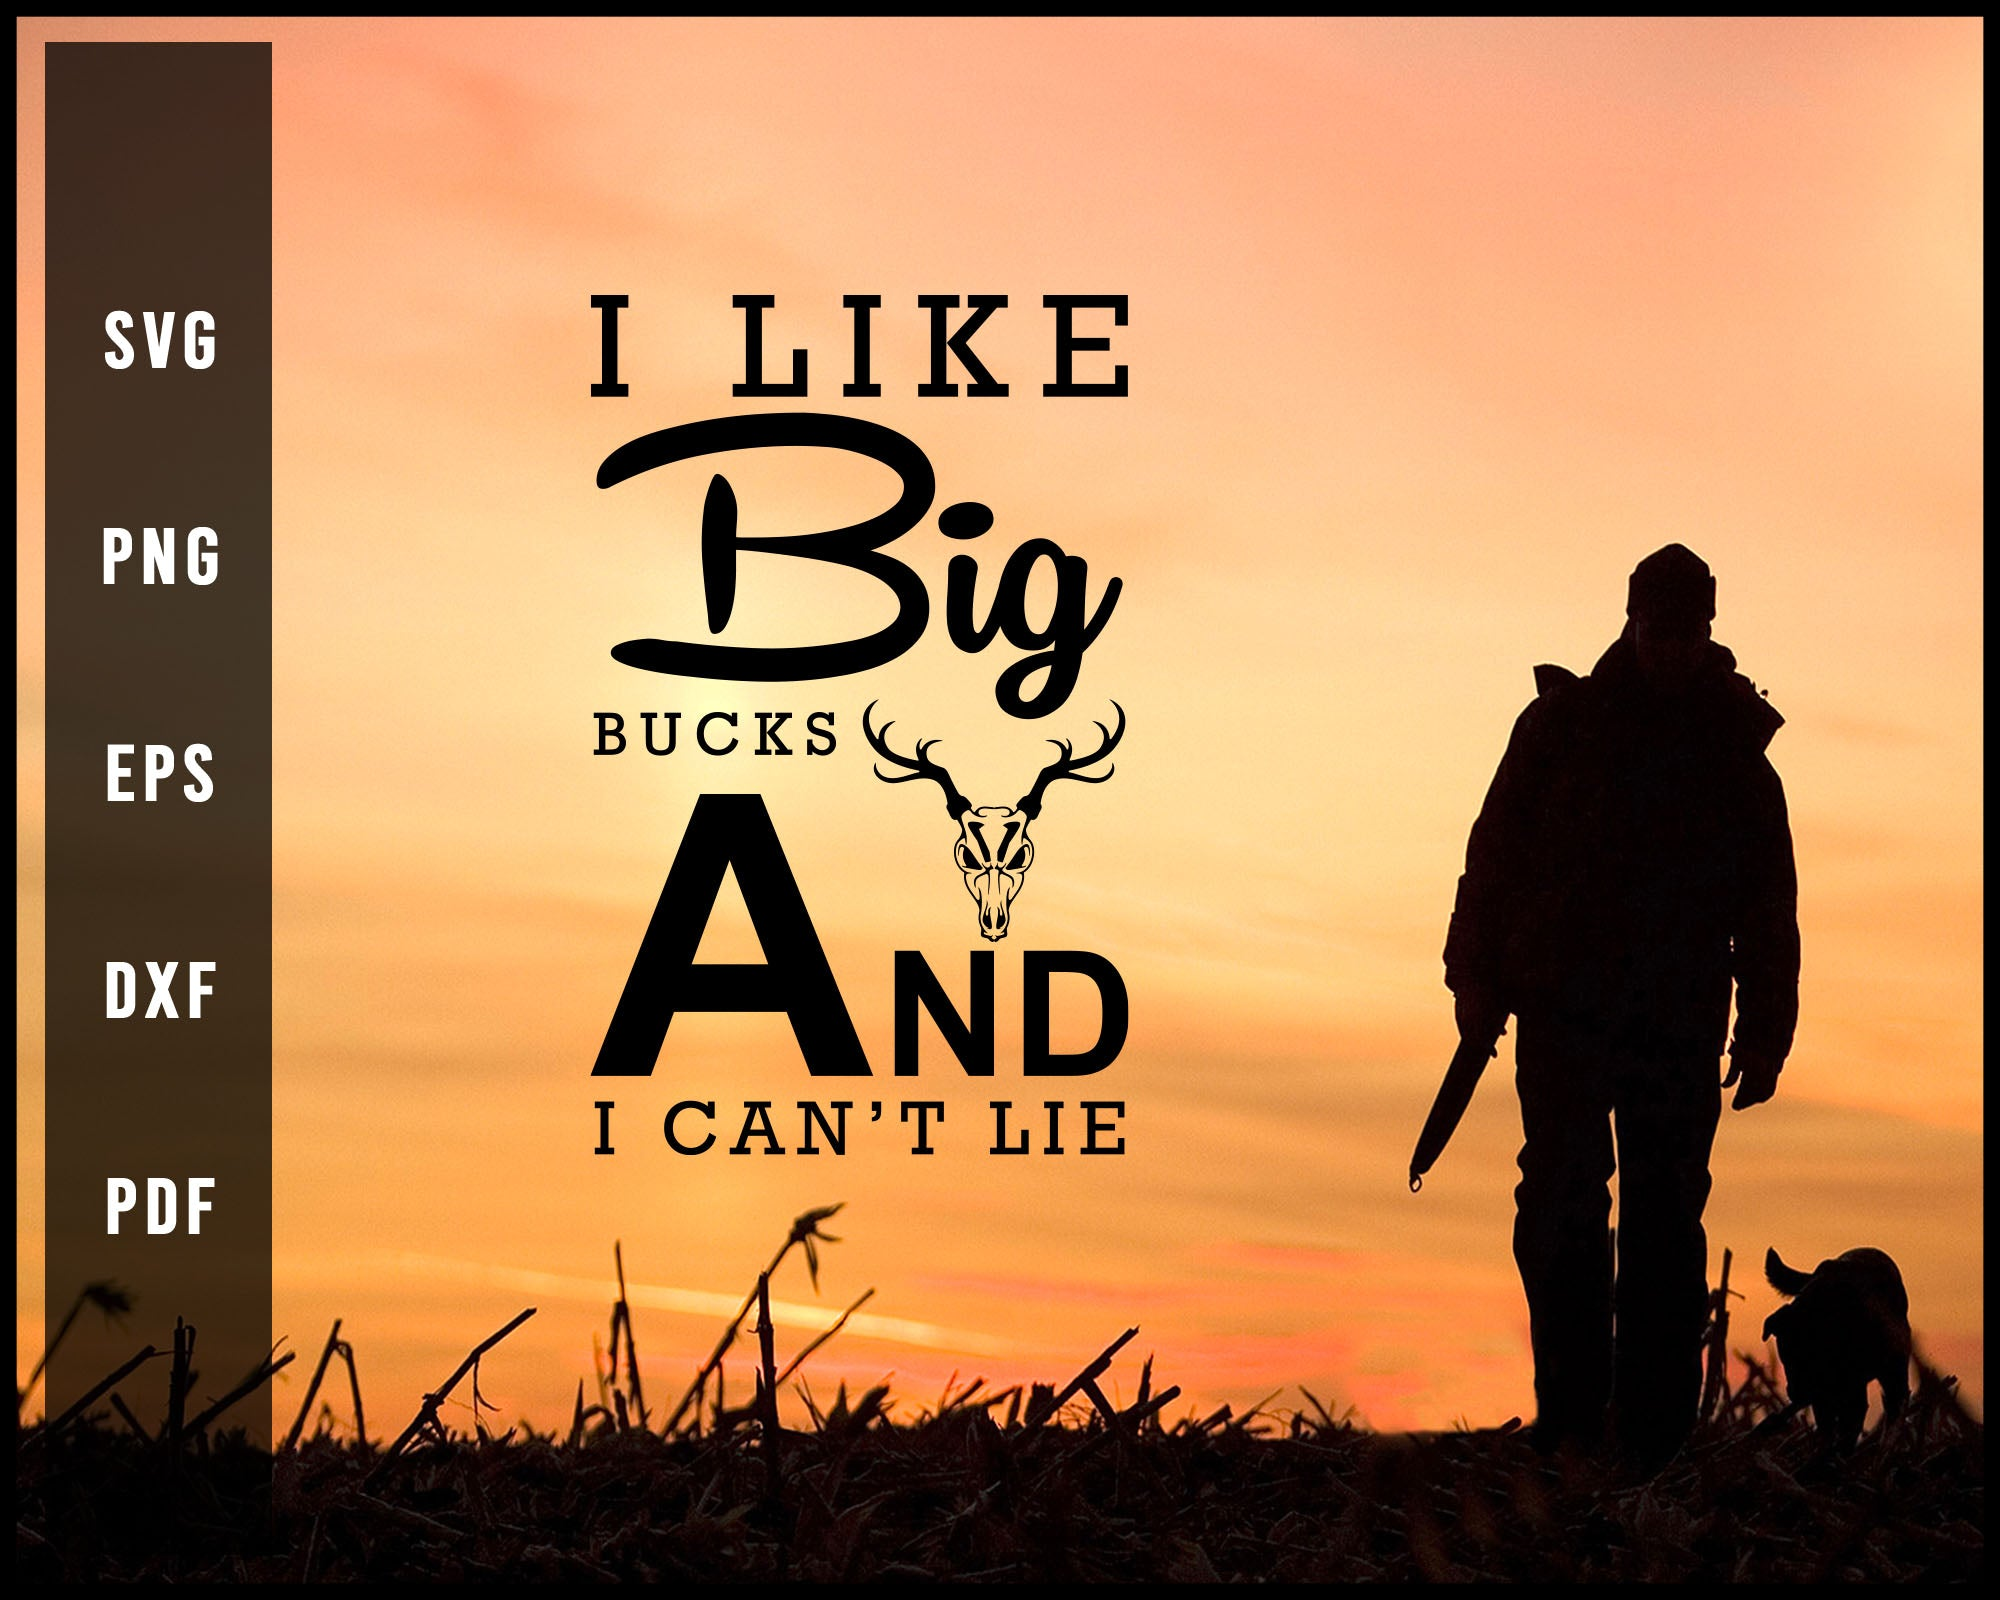 I like Big Bucks And I Can't Lie svg png Silhouette Designs For Cricut And Printable Files